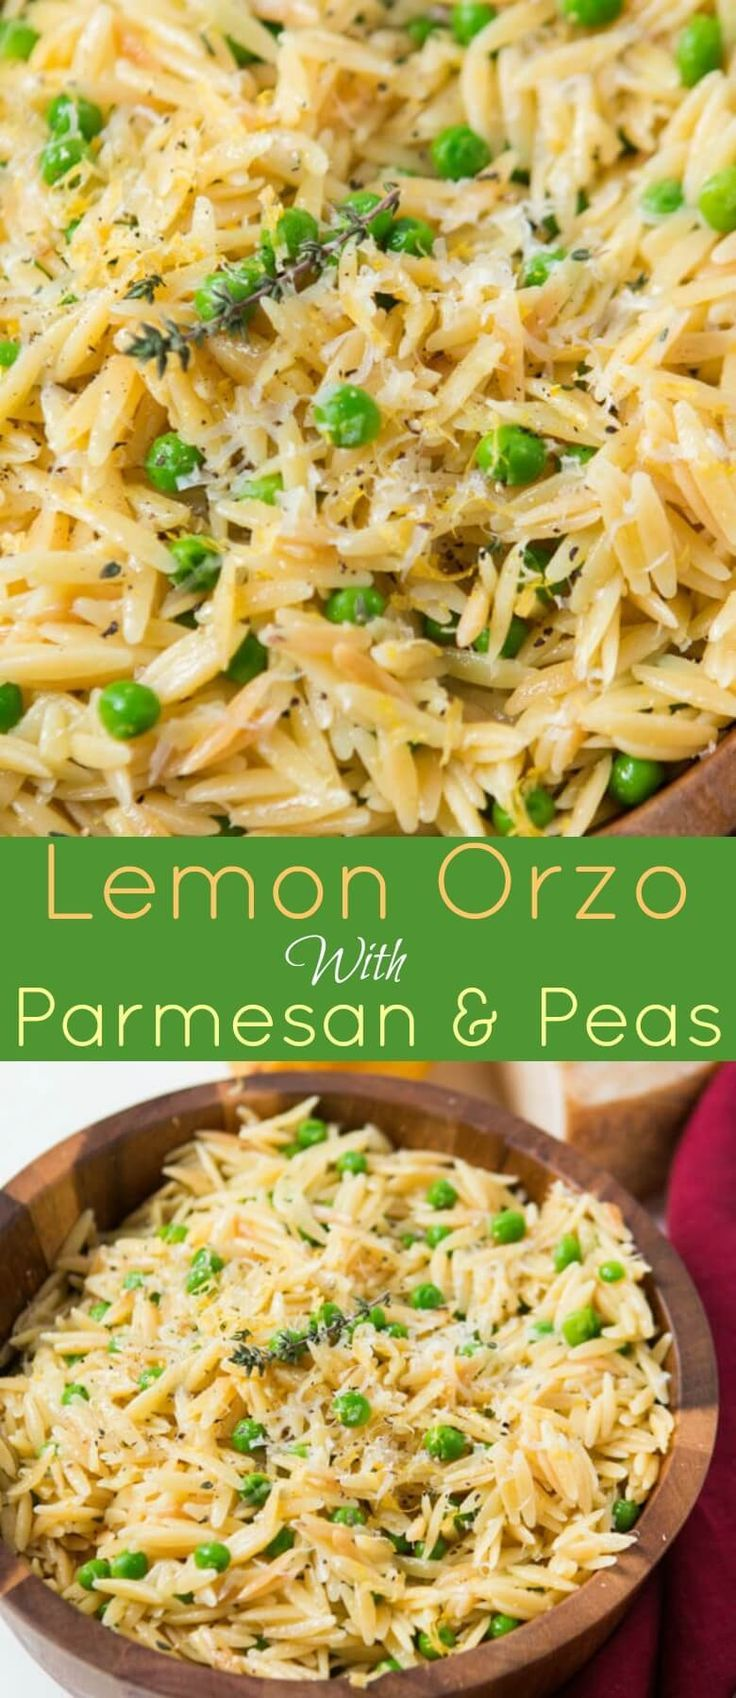 As the winter is starting to melt away we make recipes that scream spring like this Quick and easy lemon orzo with parmesan and peas. via @ohsweetbasil